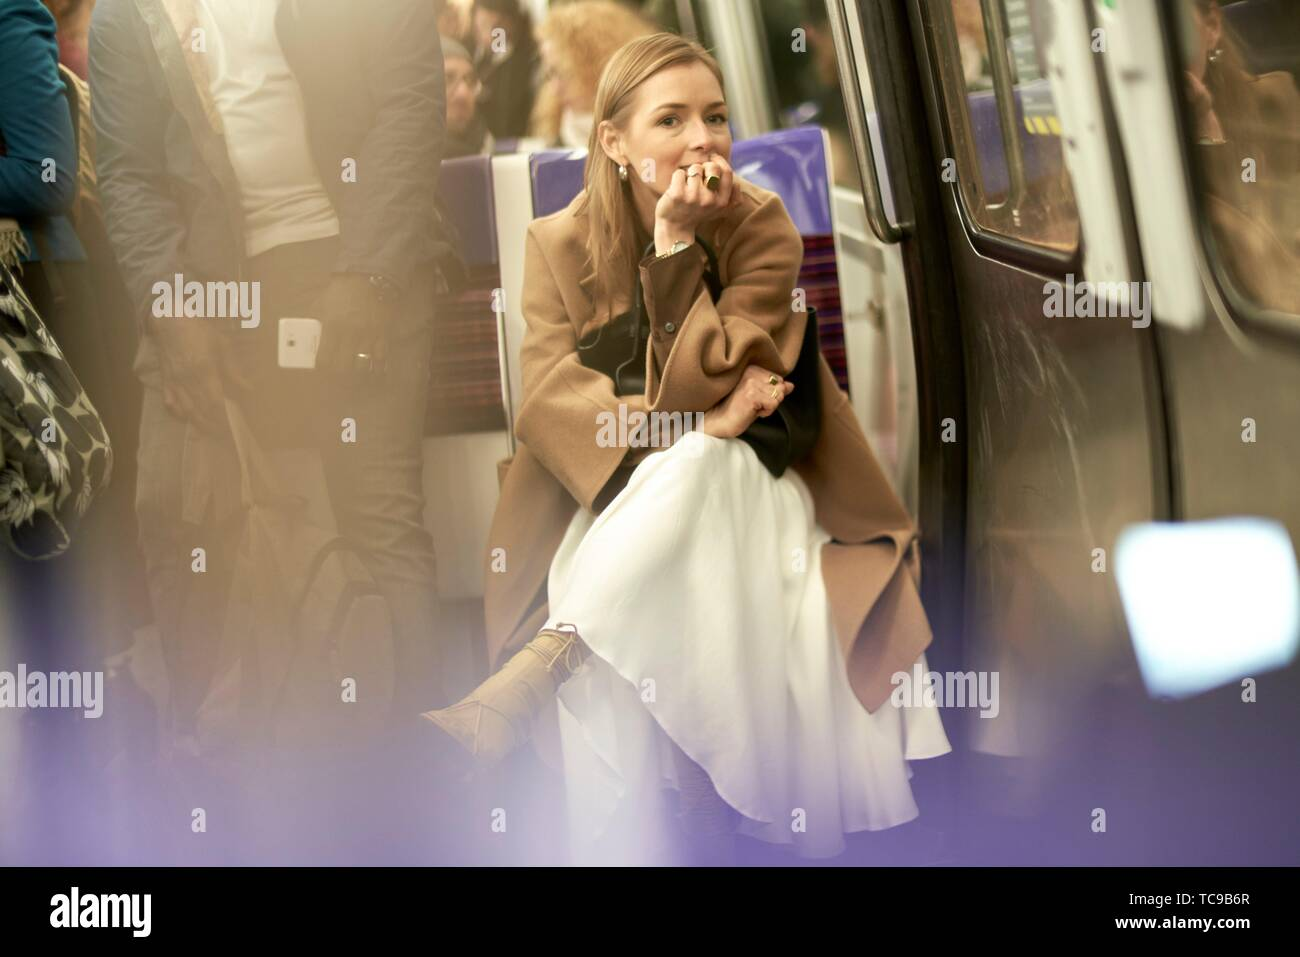 fashionable blogger woman sitting in metro, using public transportation, during fashion week, in city Paris, France Stock Photo